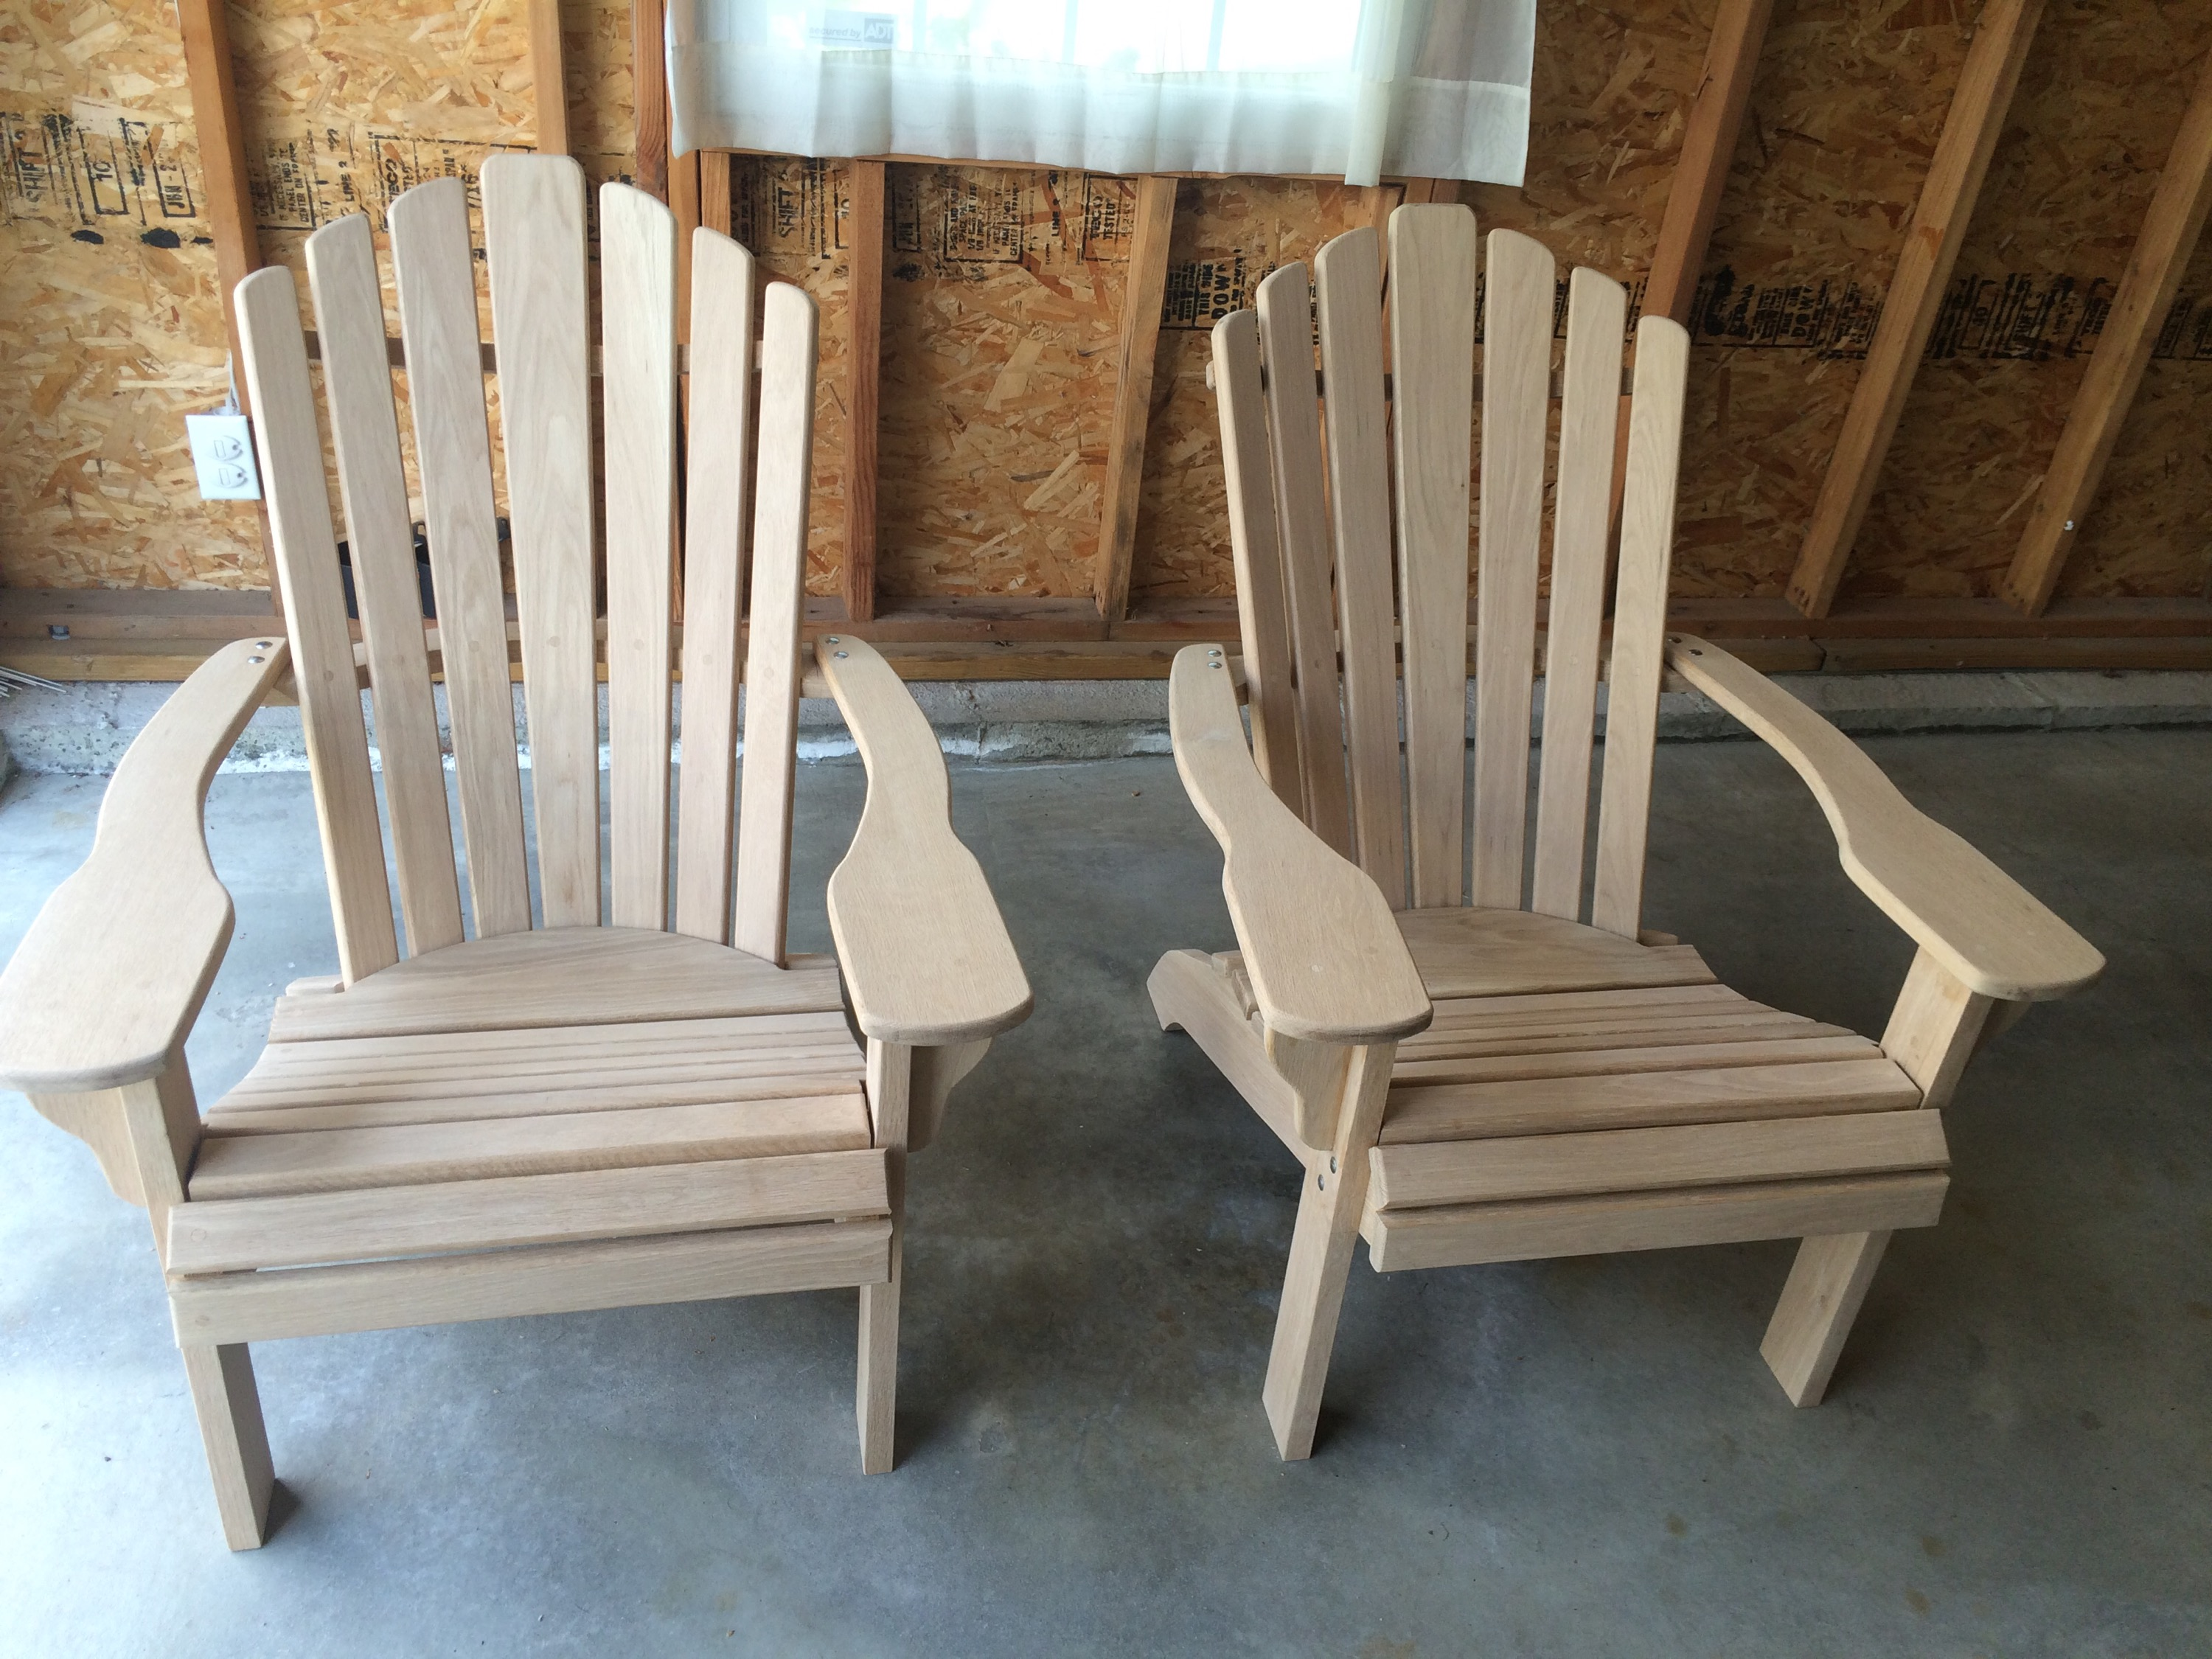 Peachy White Oak Woodworks Hand Crafted In Coventry Connecticut Creativecarmelina Interior Chair Design Creativecarmelinacom